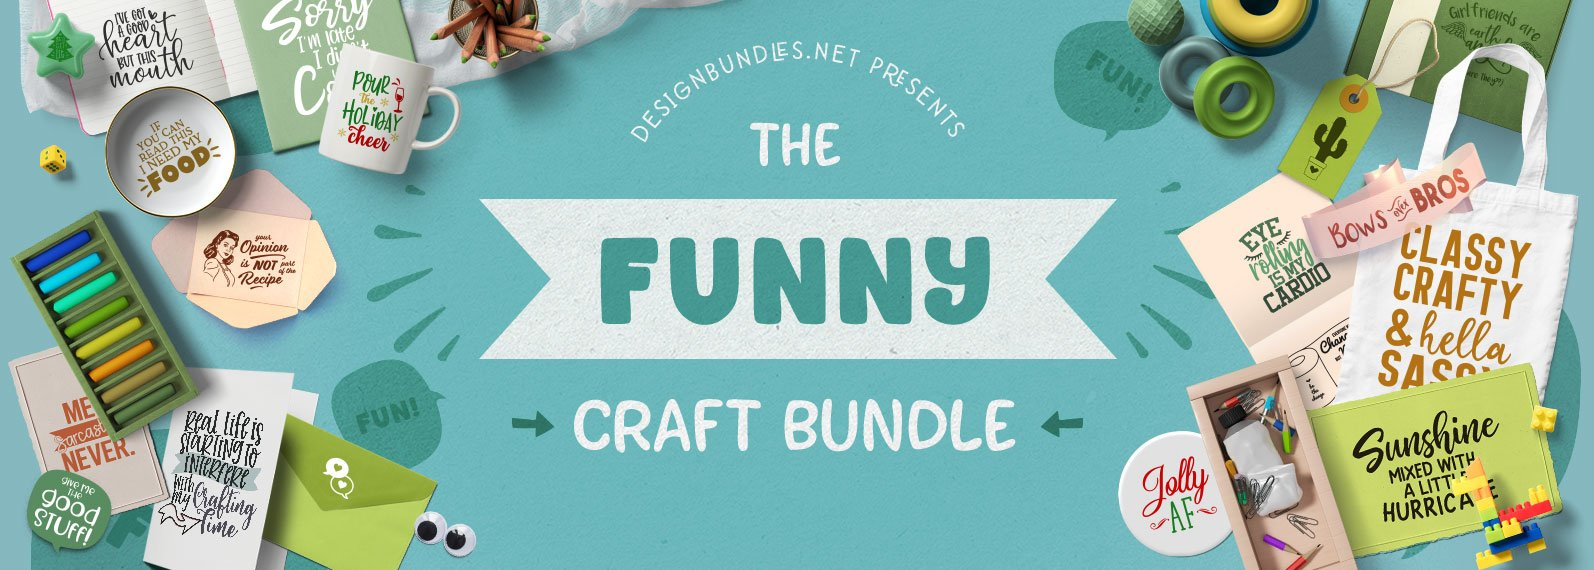 The Funny Craft Bundle Cover